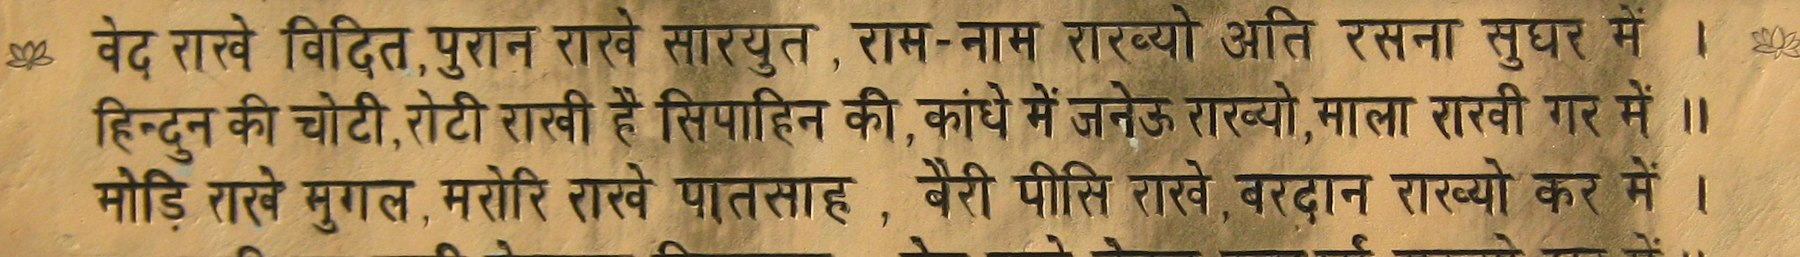 WV banner Hindi inscription.jpg